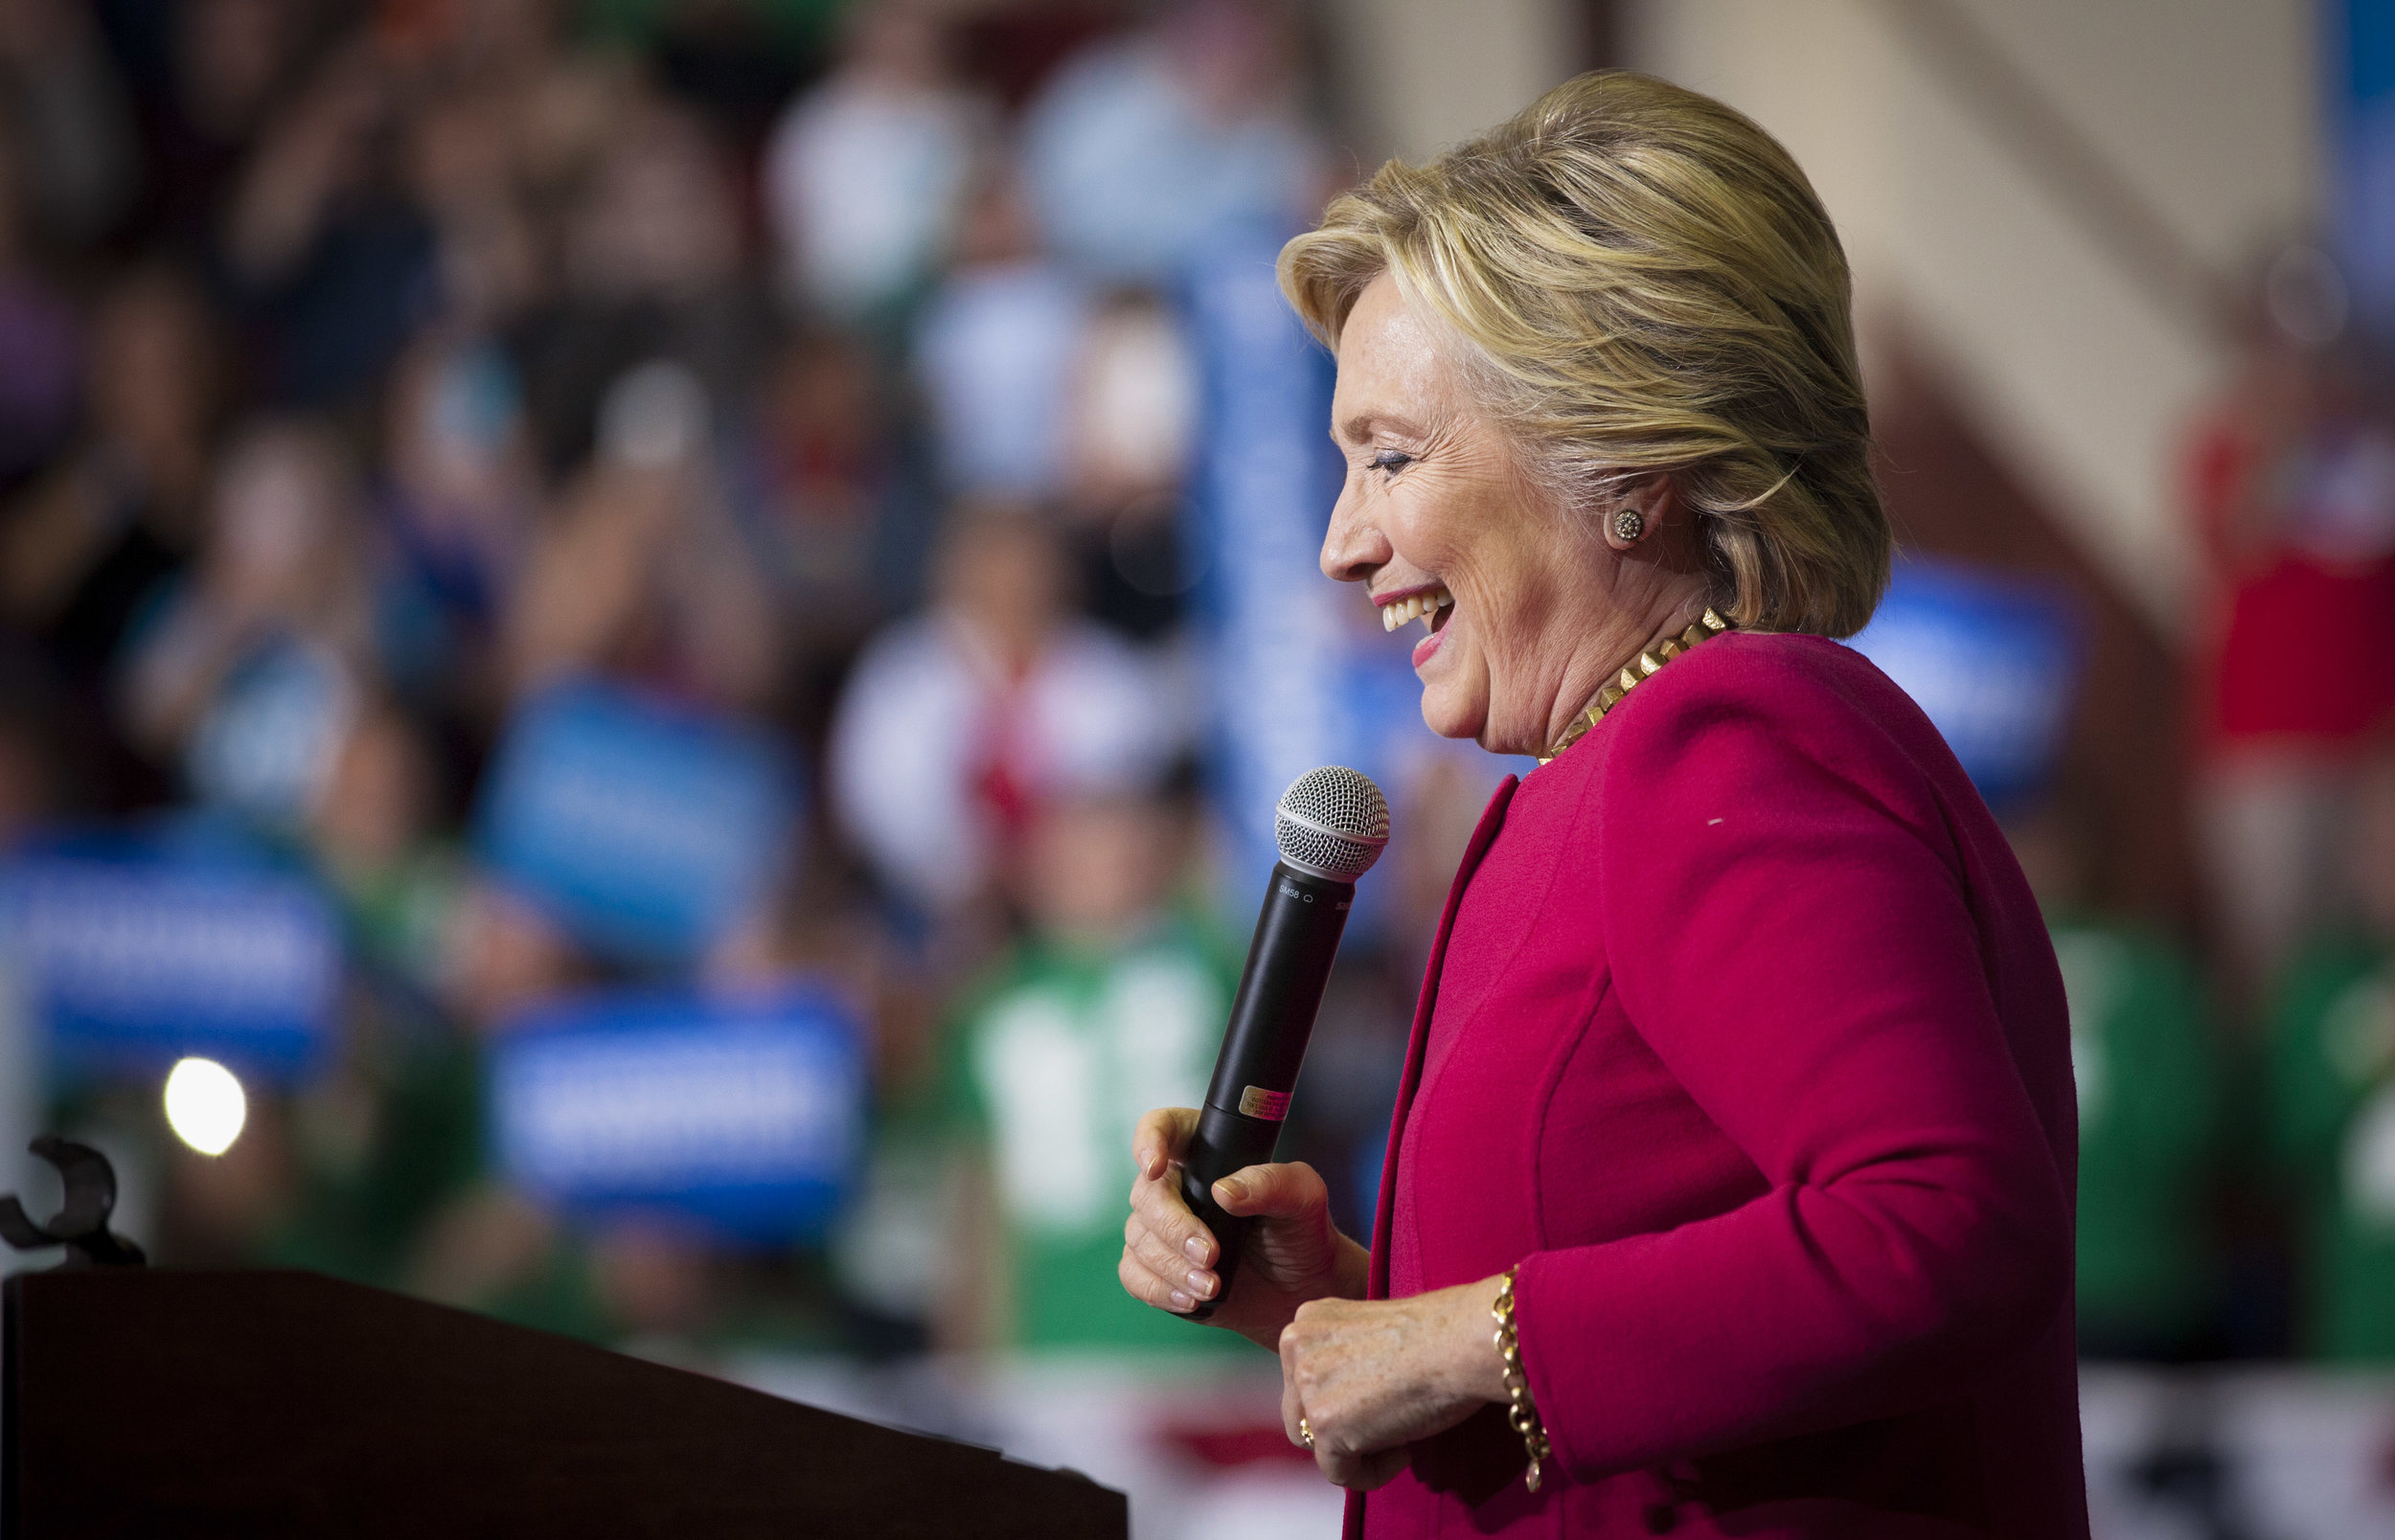 10042016_BJM_Hillary_Clinton_Campaigns_in_Harrisburg_Pennsylvania_16.jpg